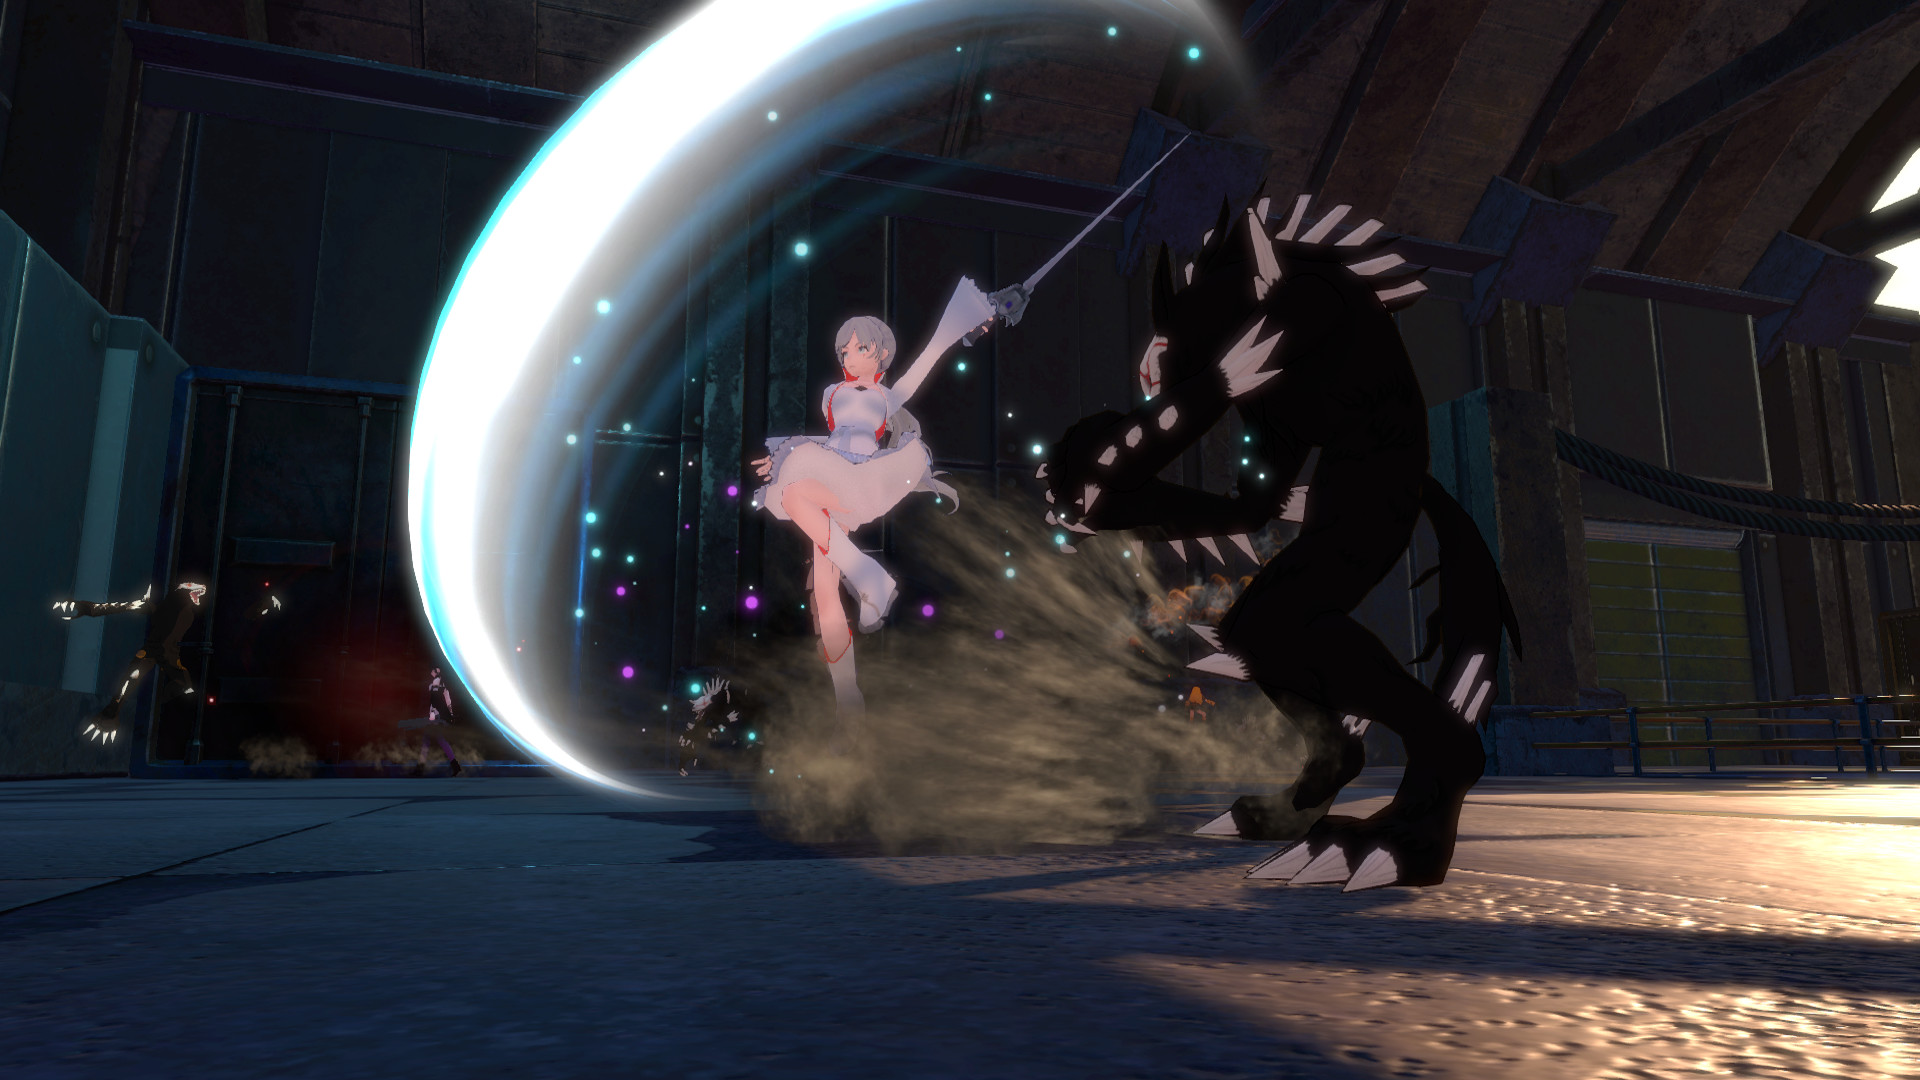 RWBY: Grimm Eclipse Screenshot 2